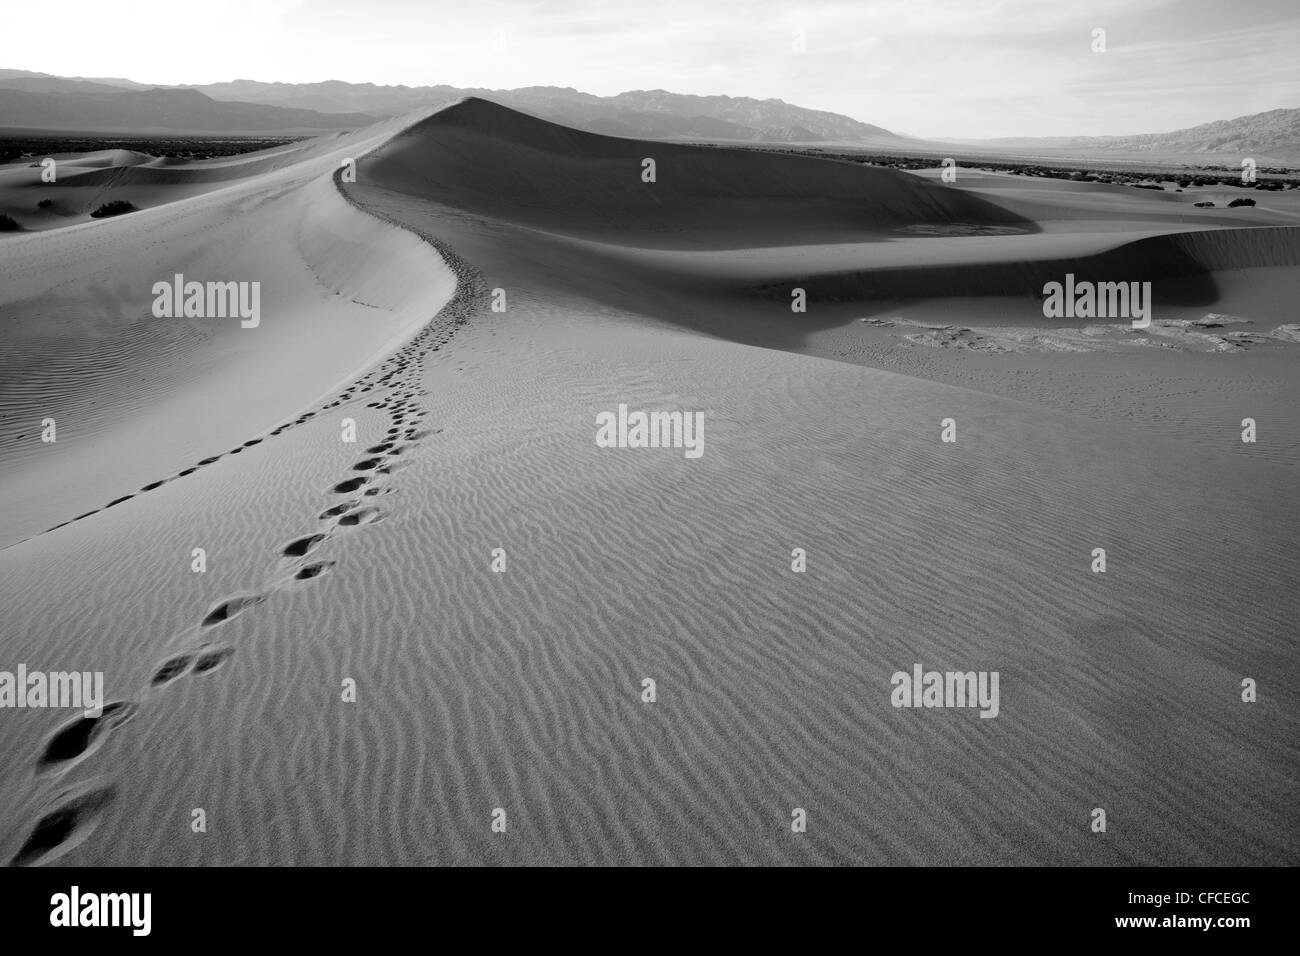 Mesquite flache Sanddünen im Death Valley, Kalifornien, USA Stockfoto